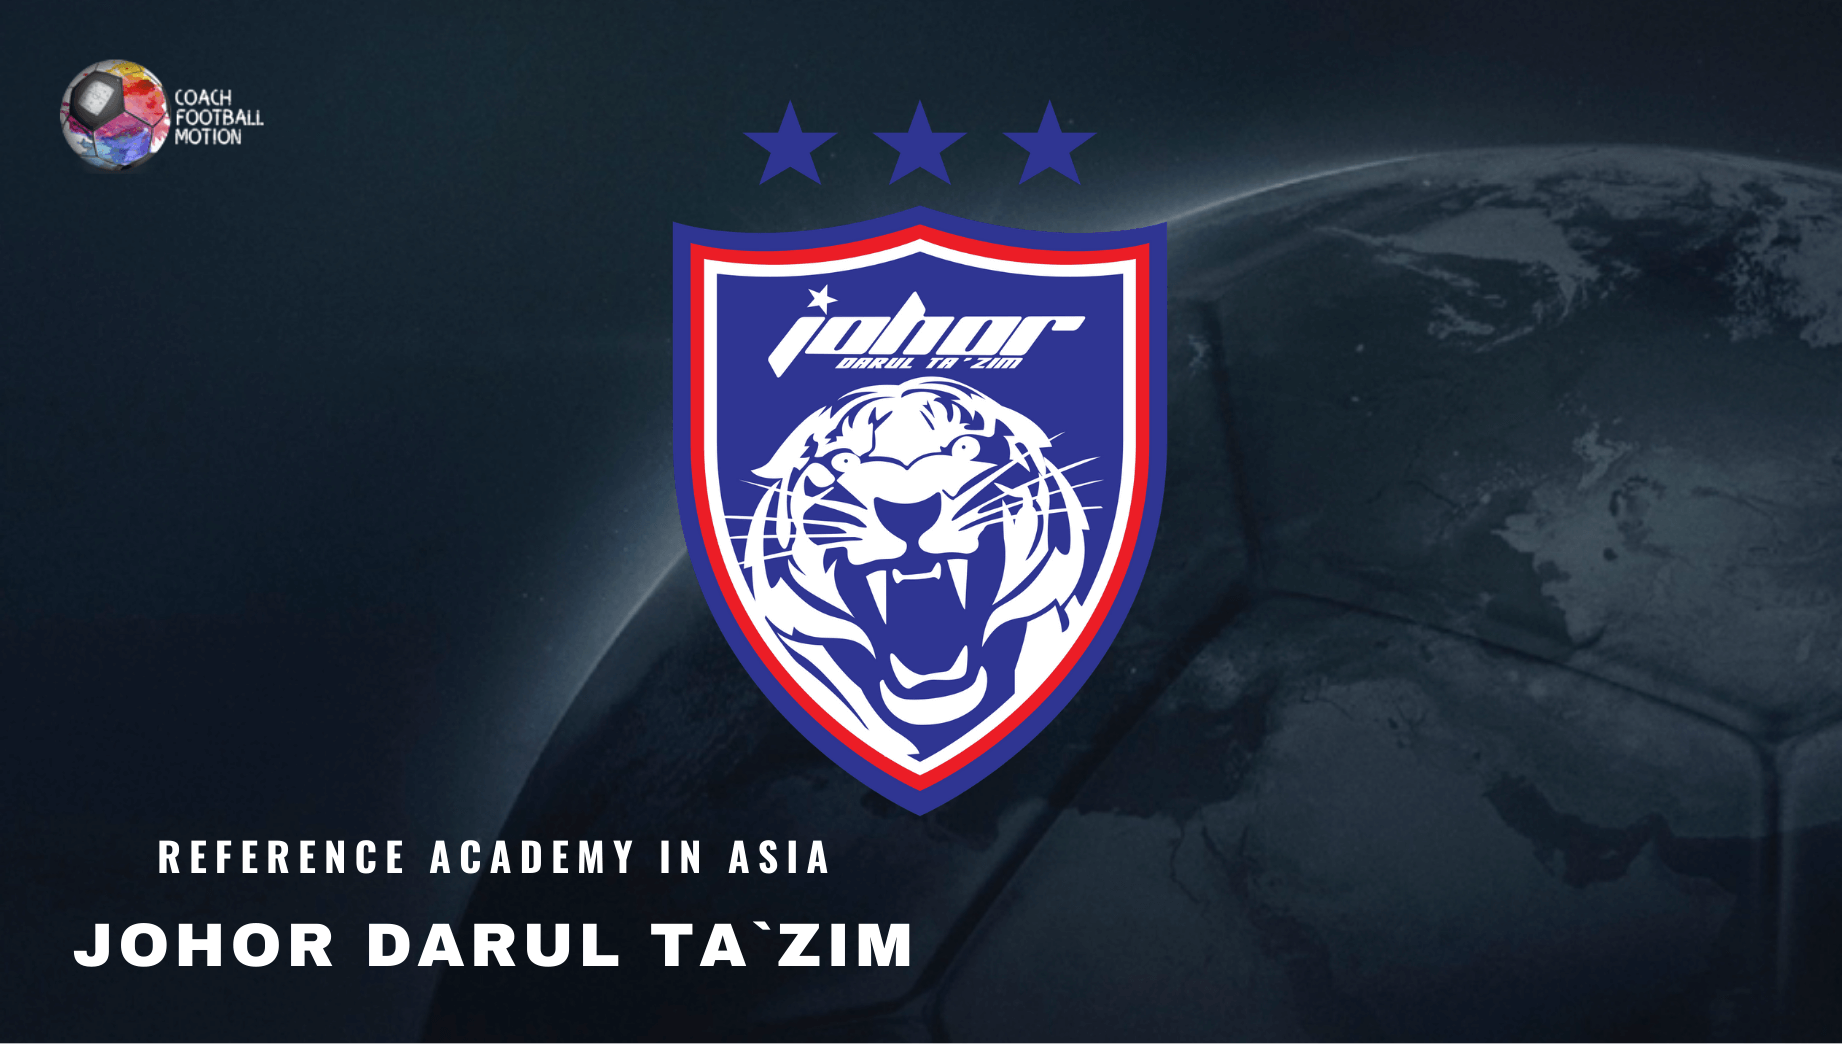 Johor Darul Ta´zim FC, in Coach Football Motion.